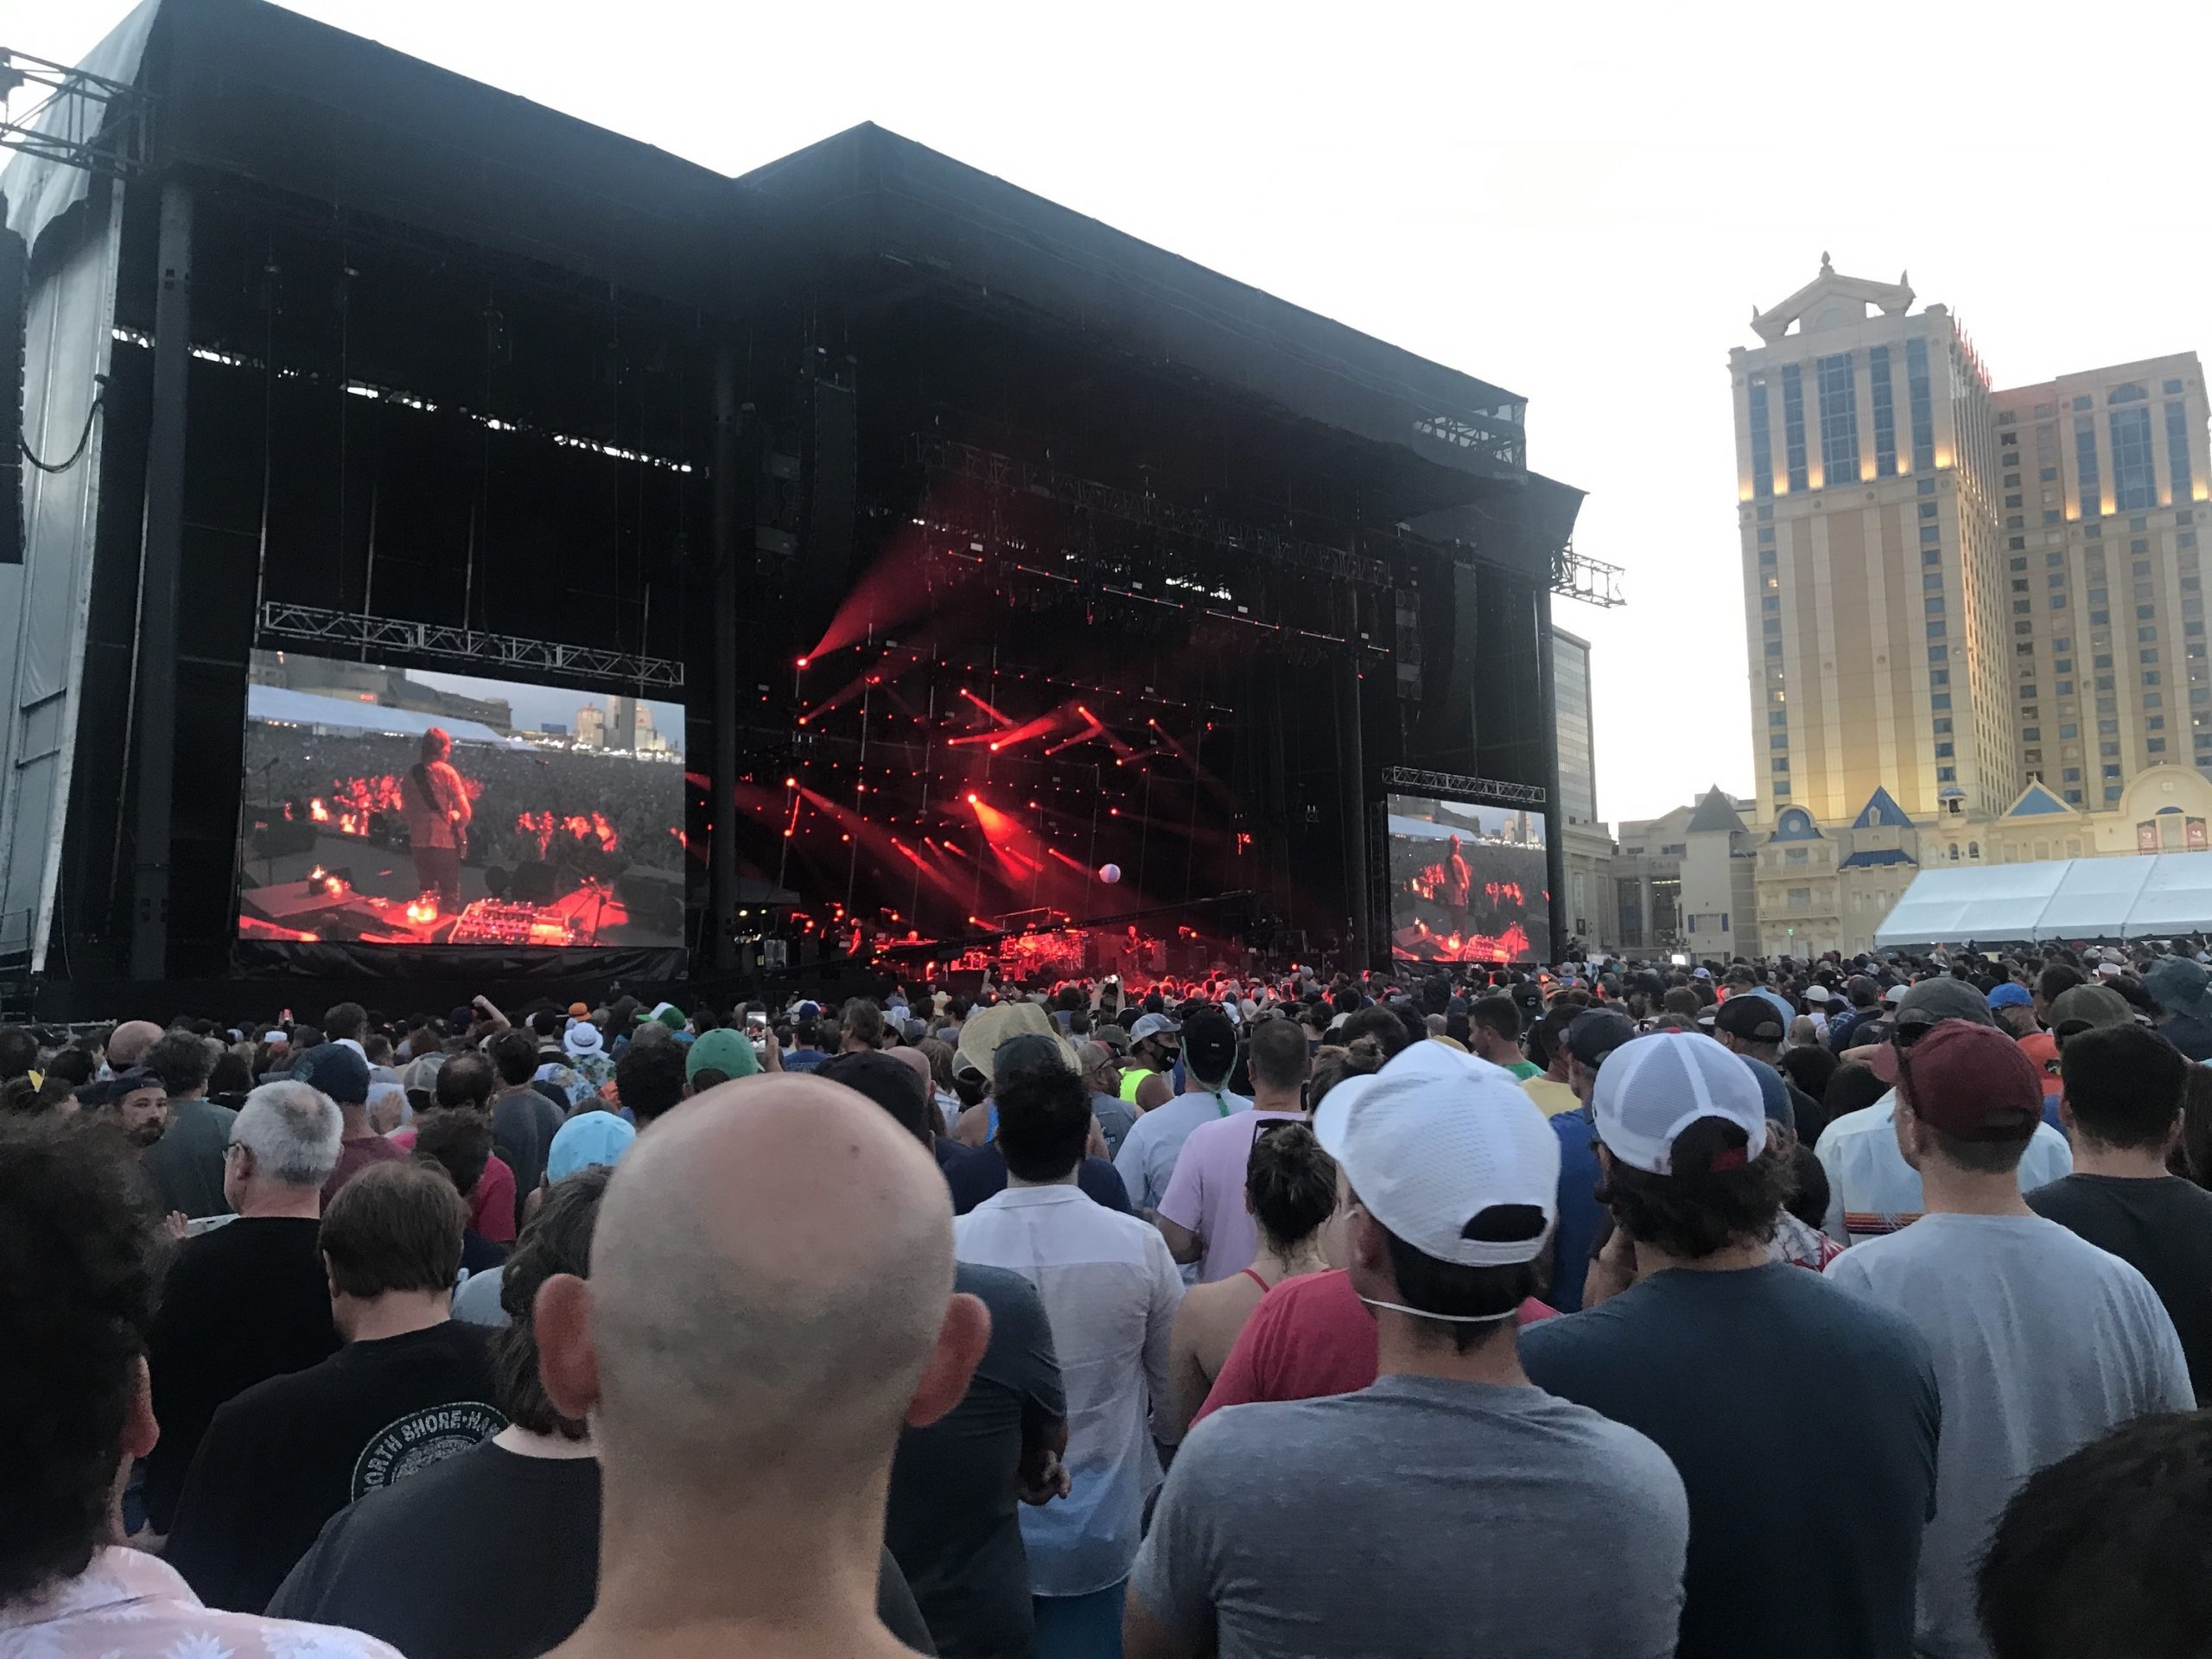 Phish performs Sunday, Aug. 15, 2021 on the beach in Atlantic City, New Jersey (Shaun R. Smith/The High Note).